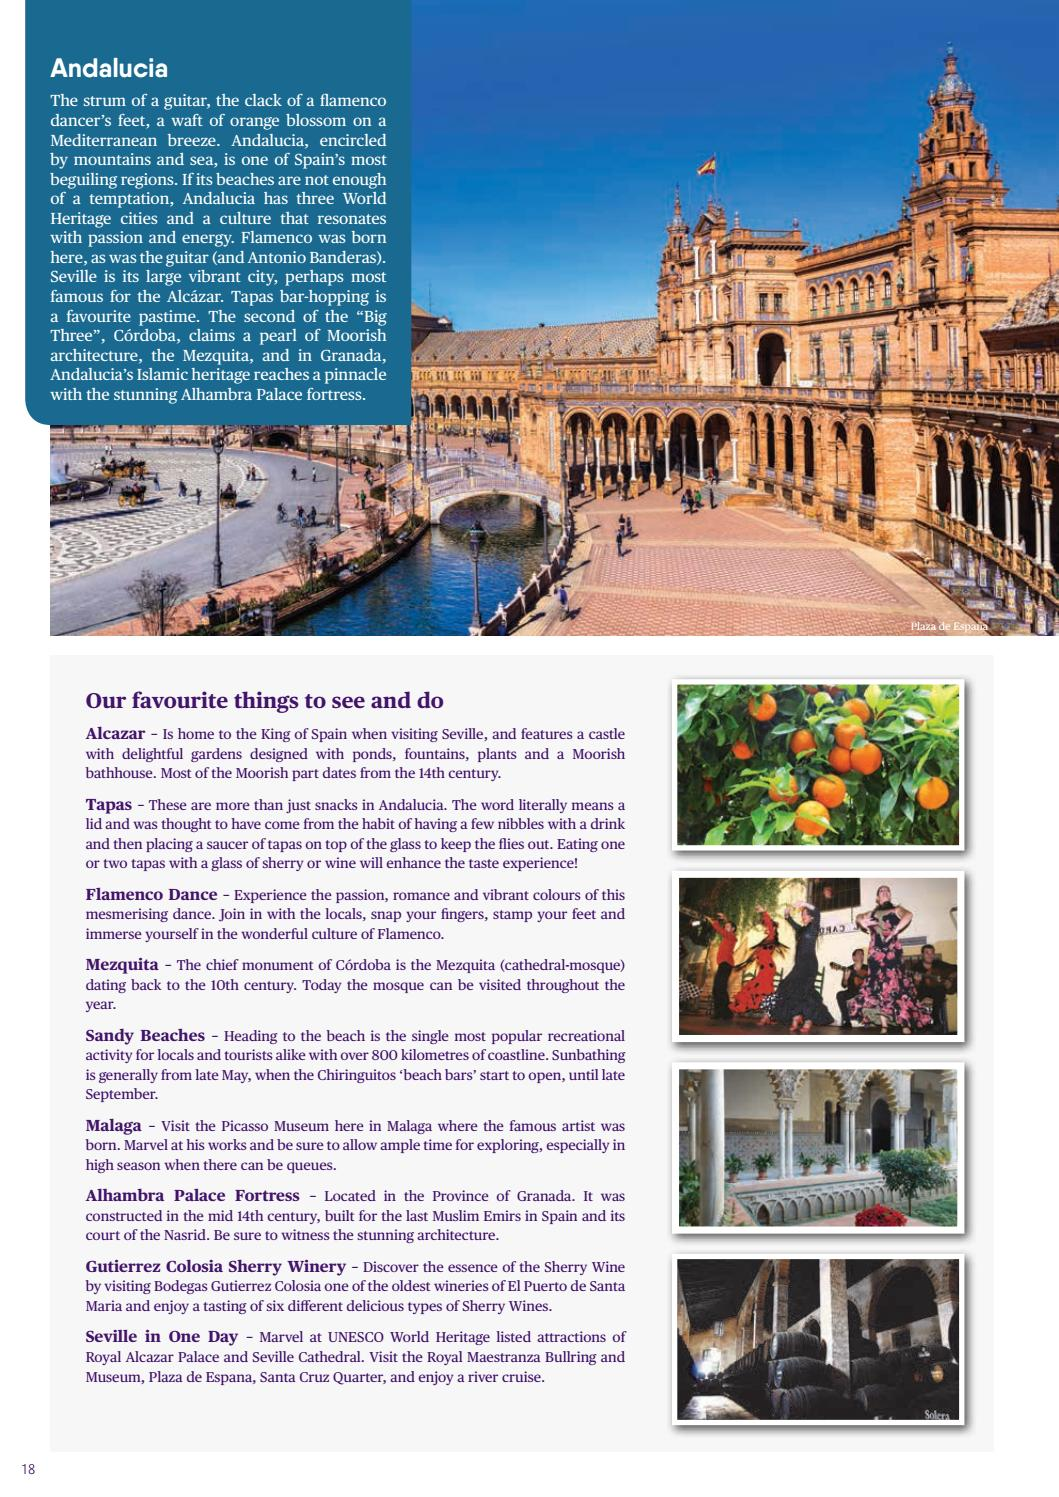 Spain portugal greece turkey 2017 brochure by house of travel spain portugal greece turkey 2017 brochure by house of travel issuu solutioingenieria Choice Image